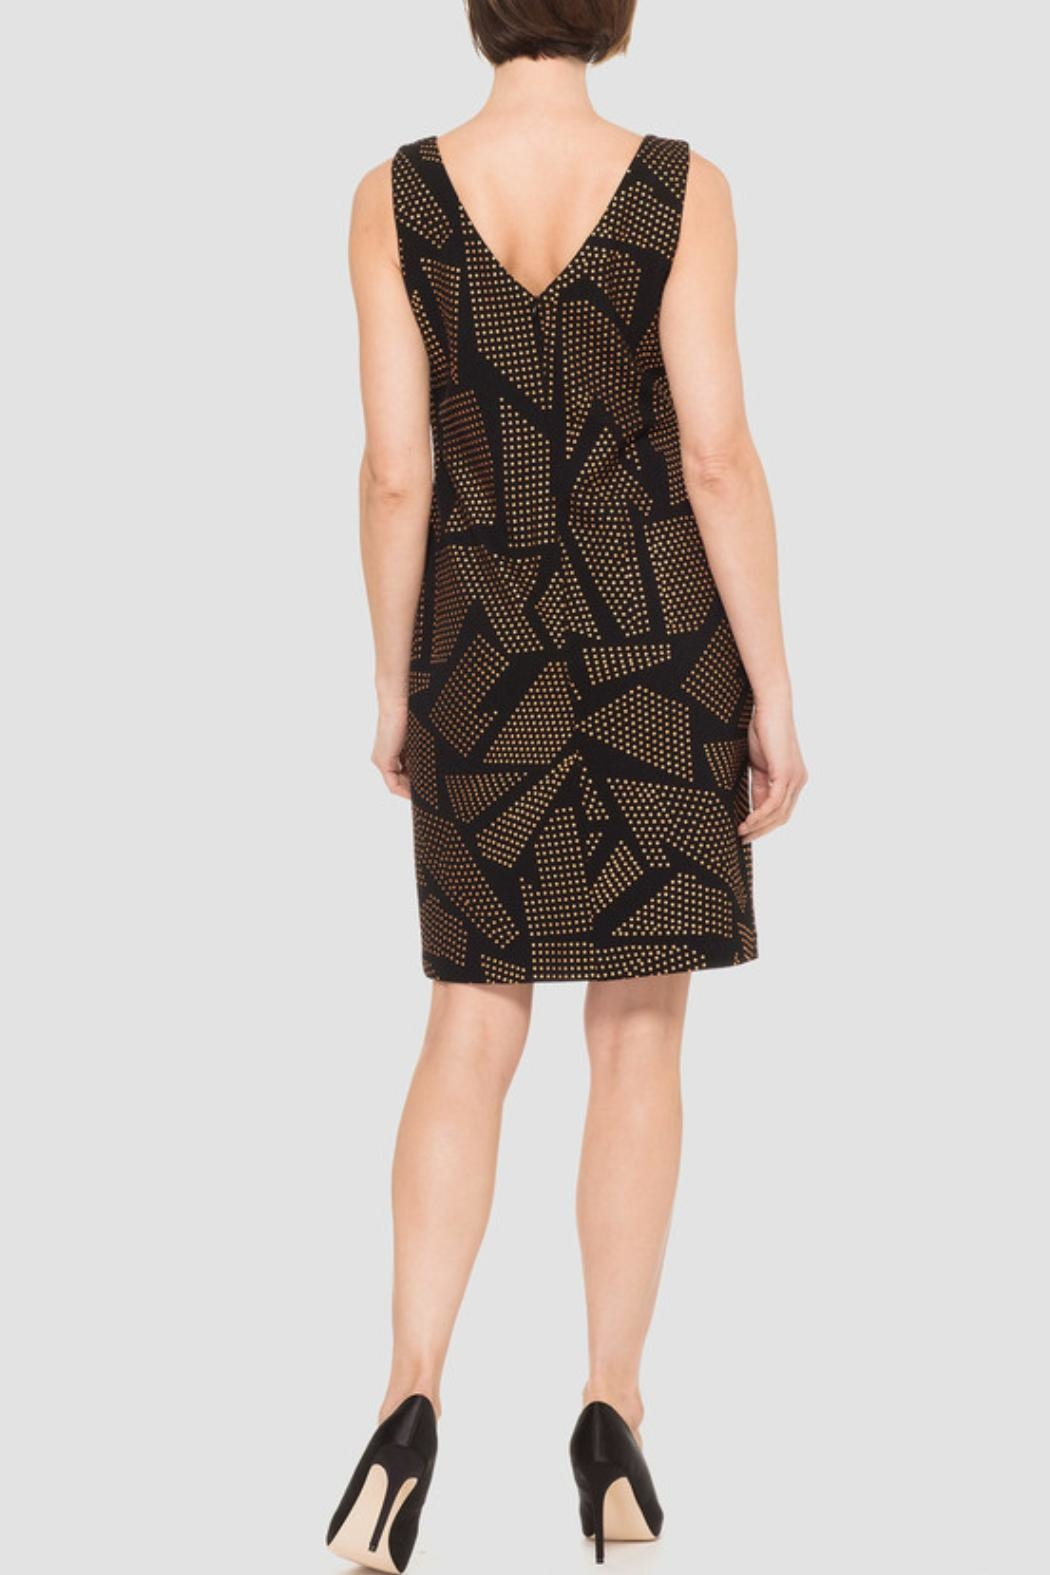 Joseph Ribkoff Holiday Dress - Front Full Image